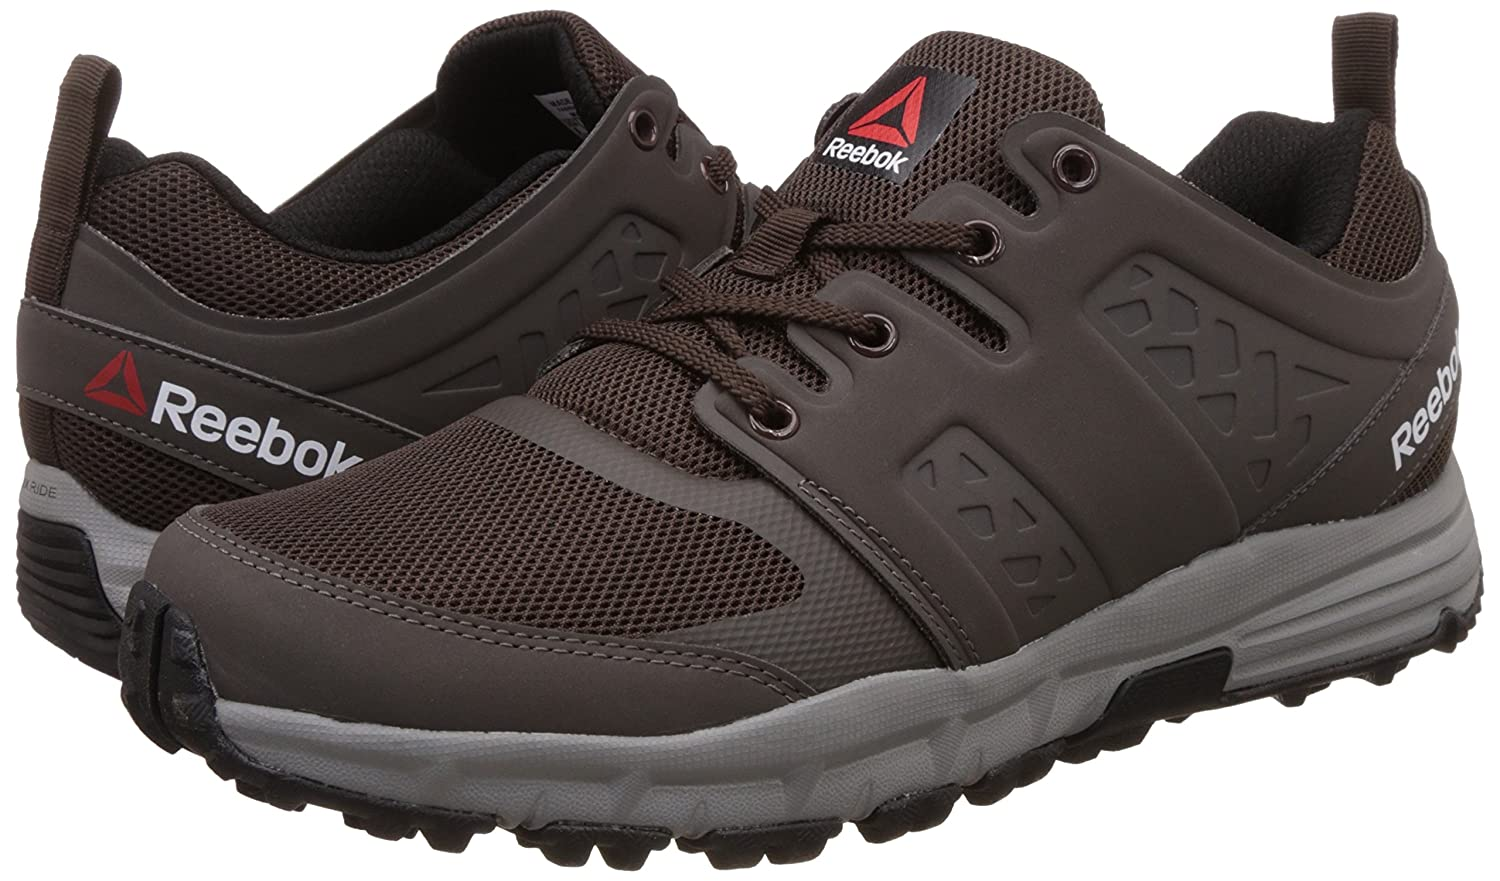 Reebok Men s Trail Ride Sneakers  Buy Online at Low Prices in India -  Amazon.in 7b84c21cf